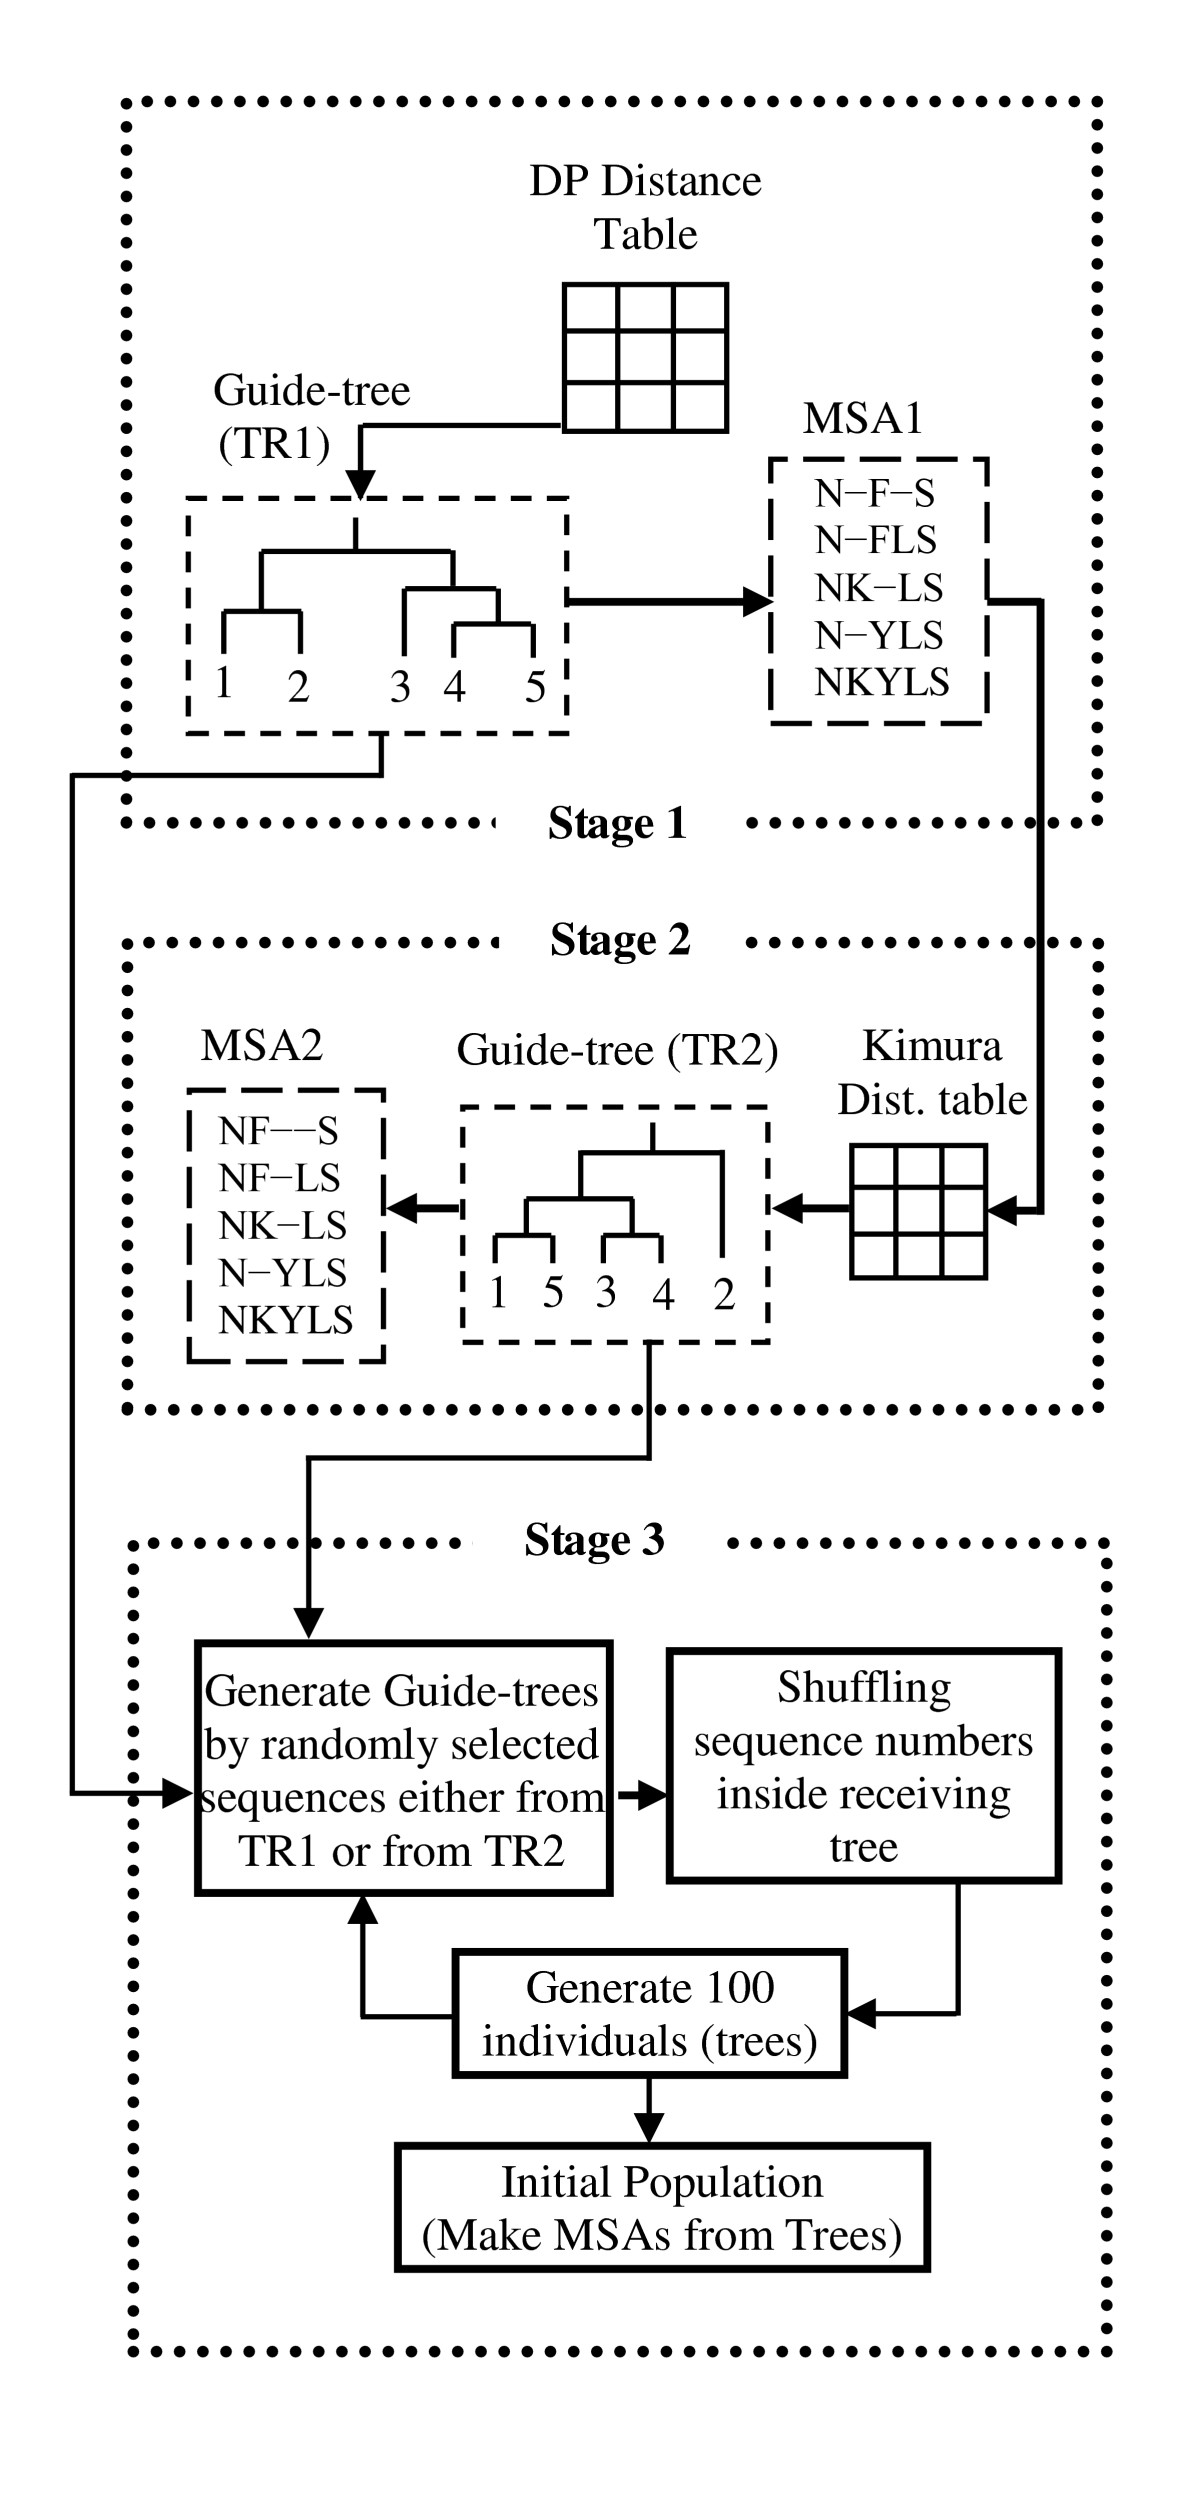 https://static-content.springer.com/image/art%3A10.1186%2F1471-2105-12-353/MediaObjects/12859_2011_Article_4782_Fig2_HTML.jpg